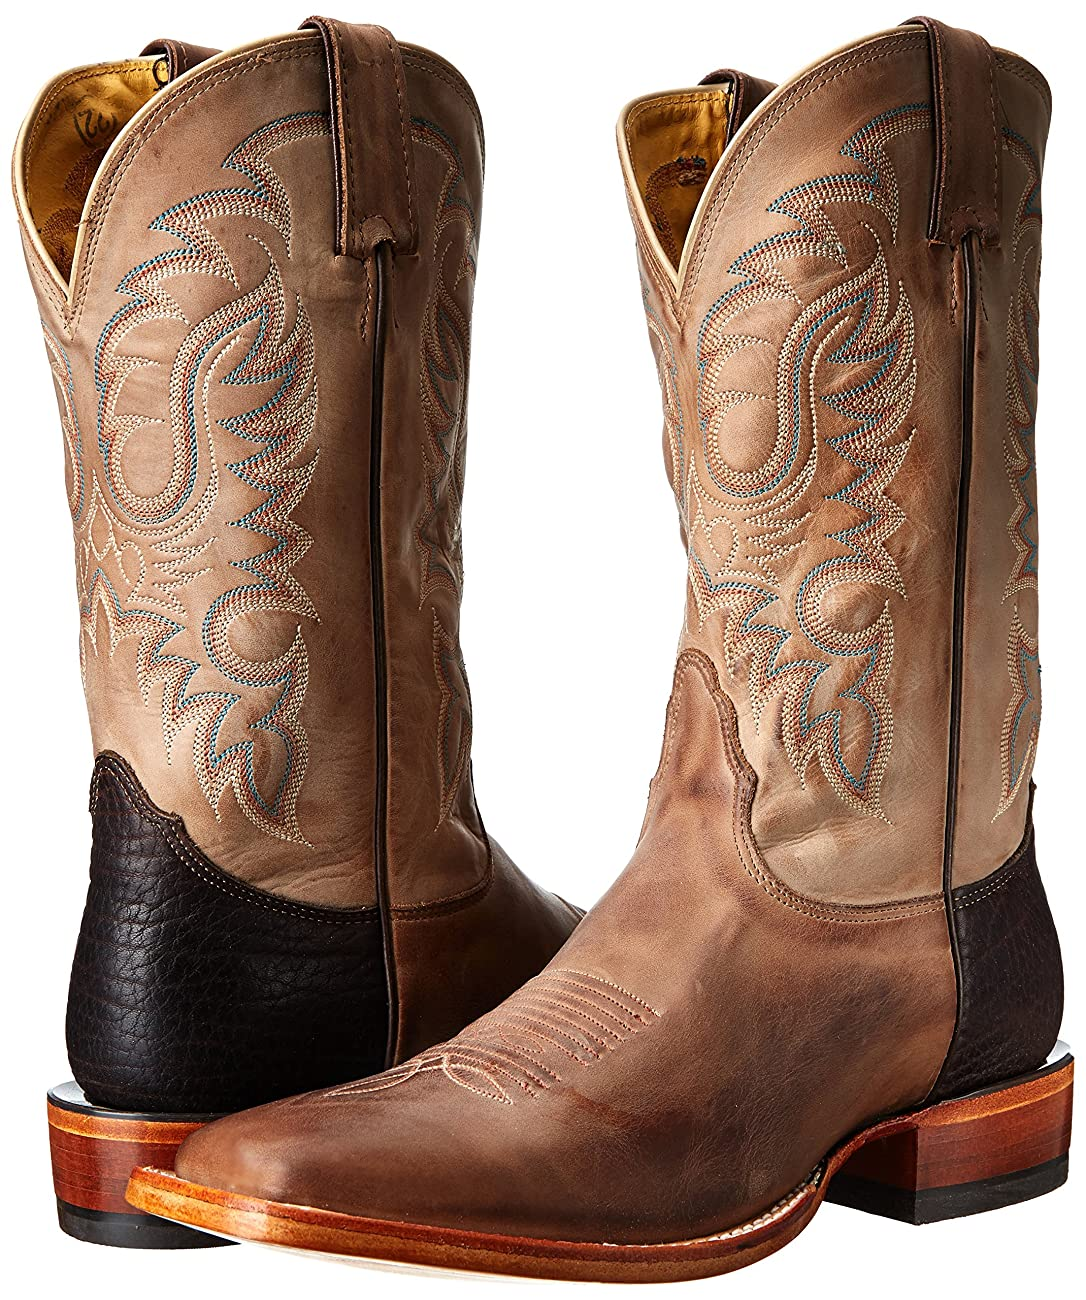 Nocona Boots Men's Vintage Cow MD2731 Western Boot 6